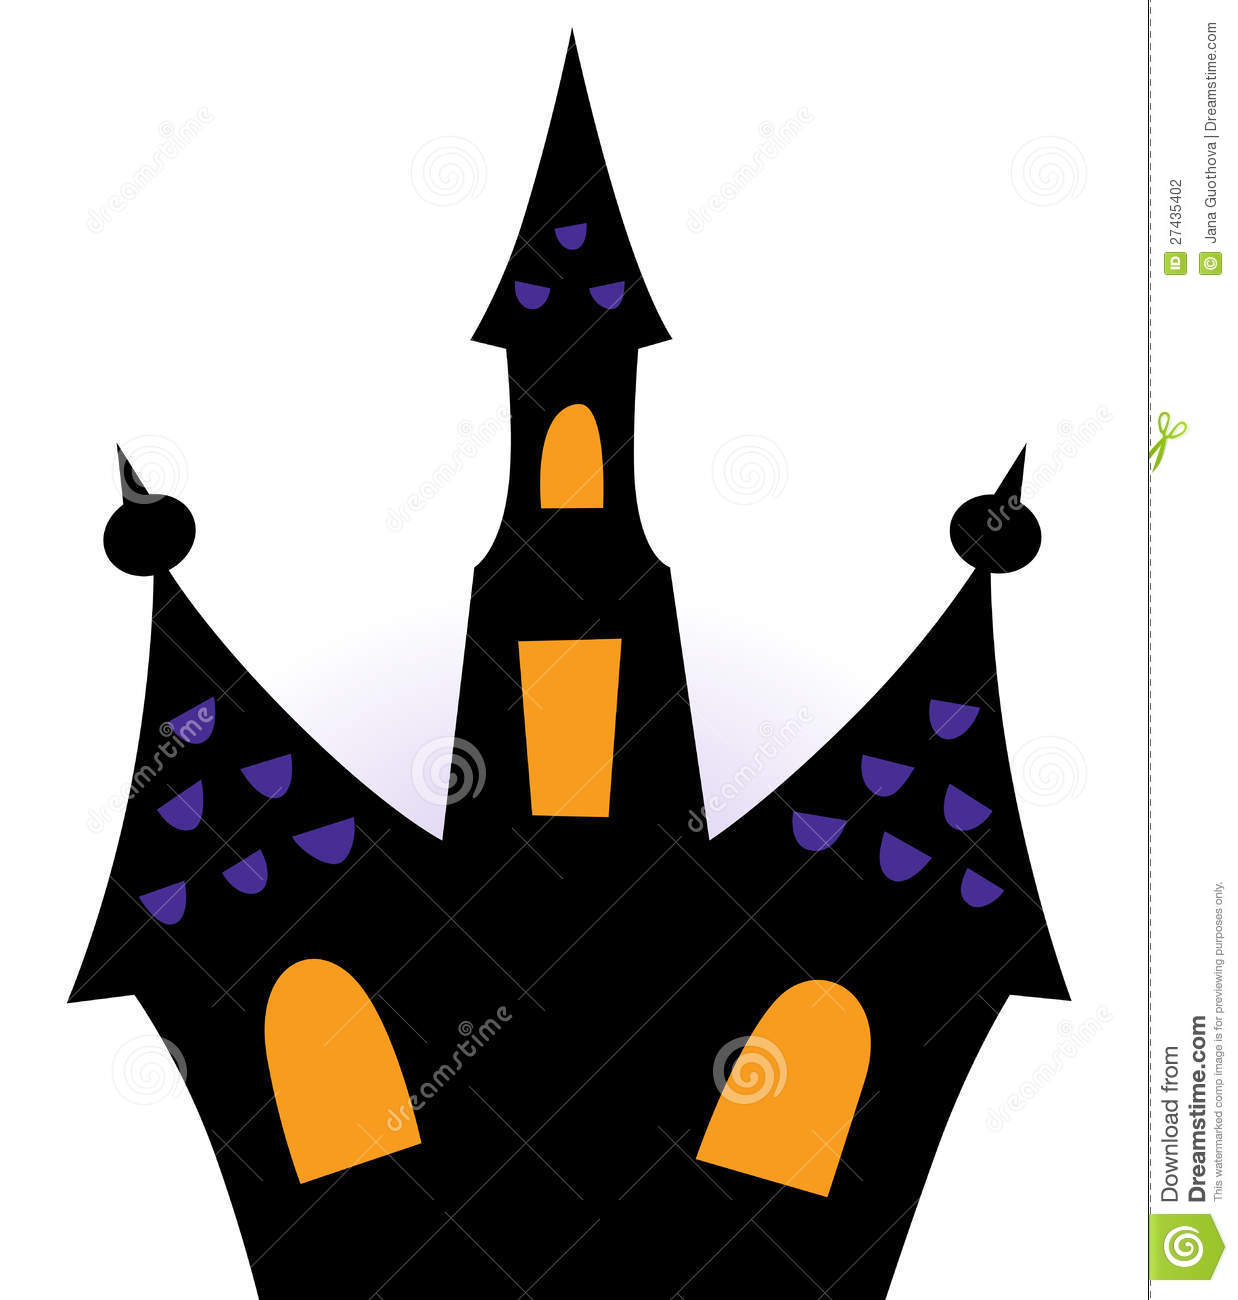 Haunted panda free images. Castle clipart mansion